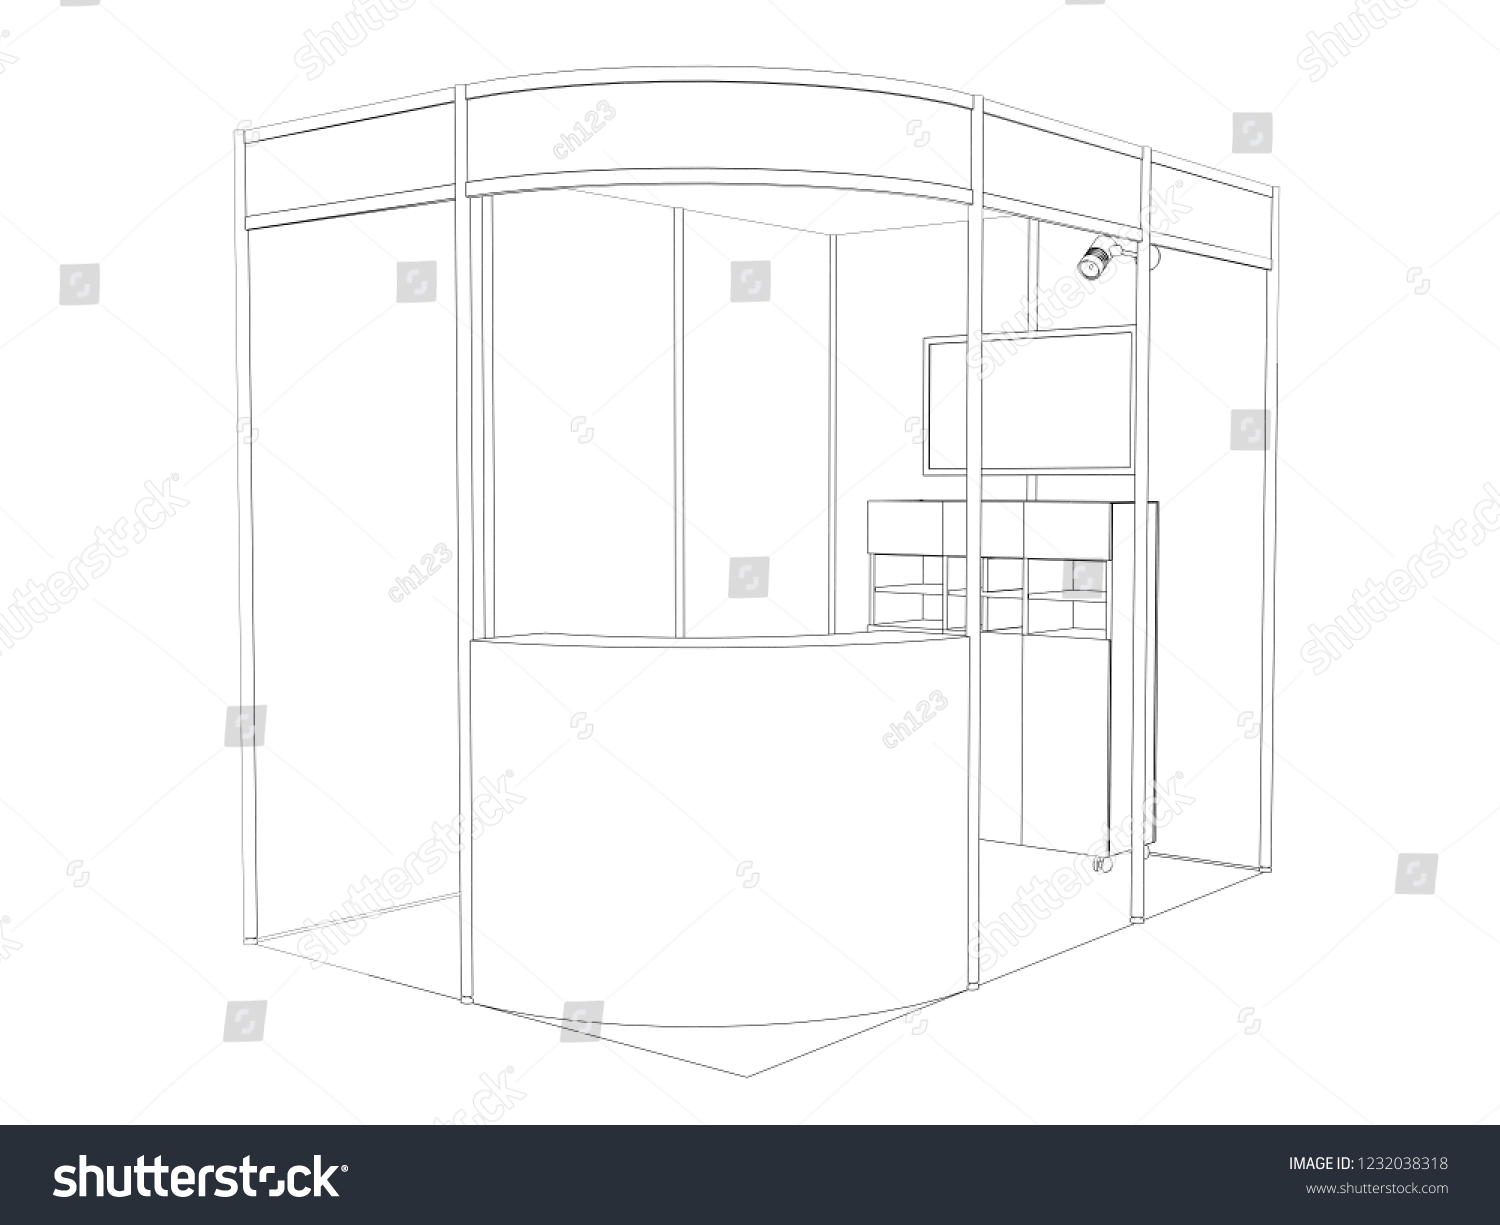 Exhibition Stand Sketch : Design your own exhibition stand with sketch and m